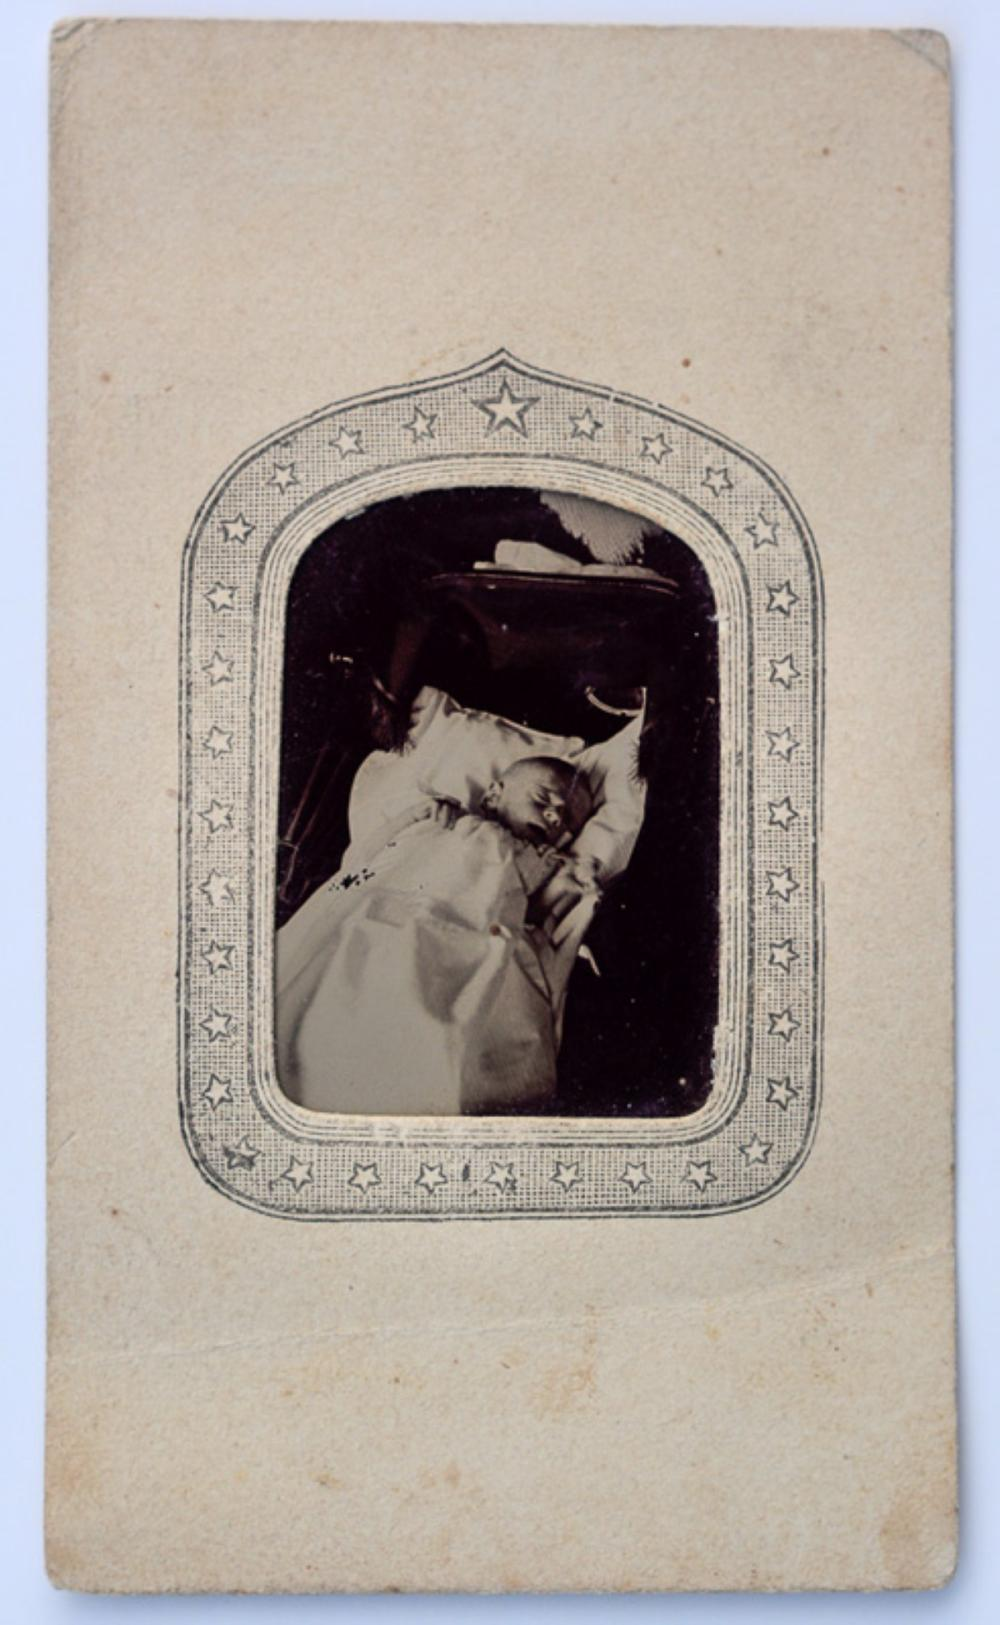 Tintype of a post mortem baby, 1860s.